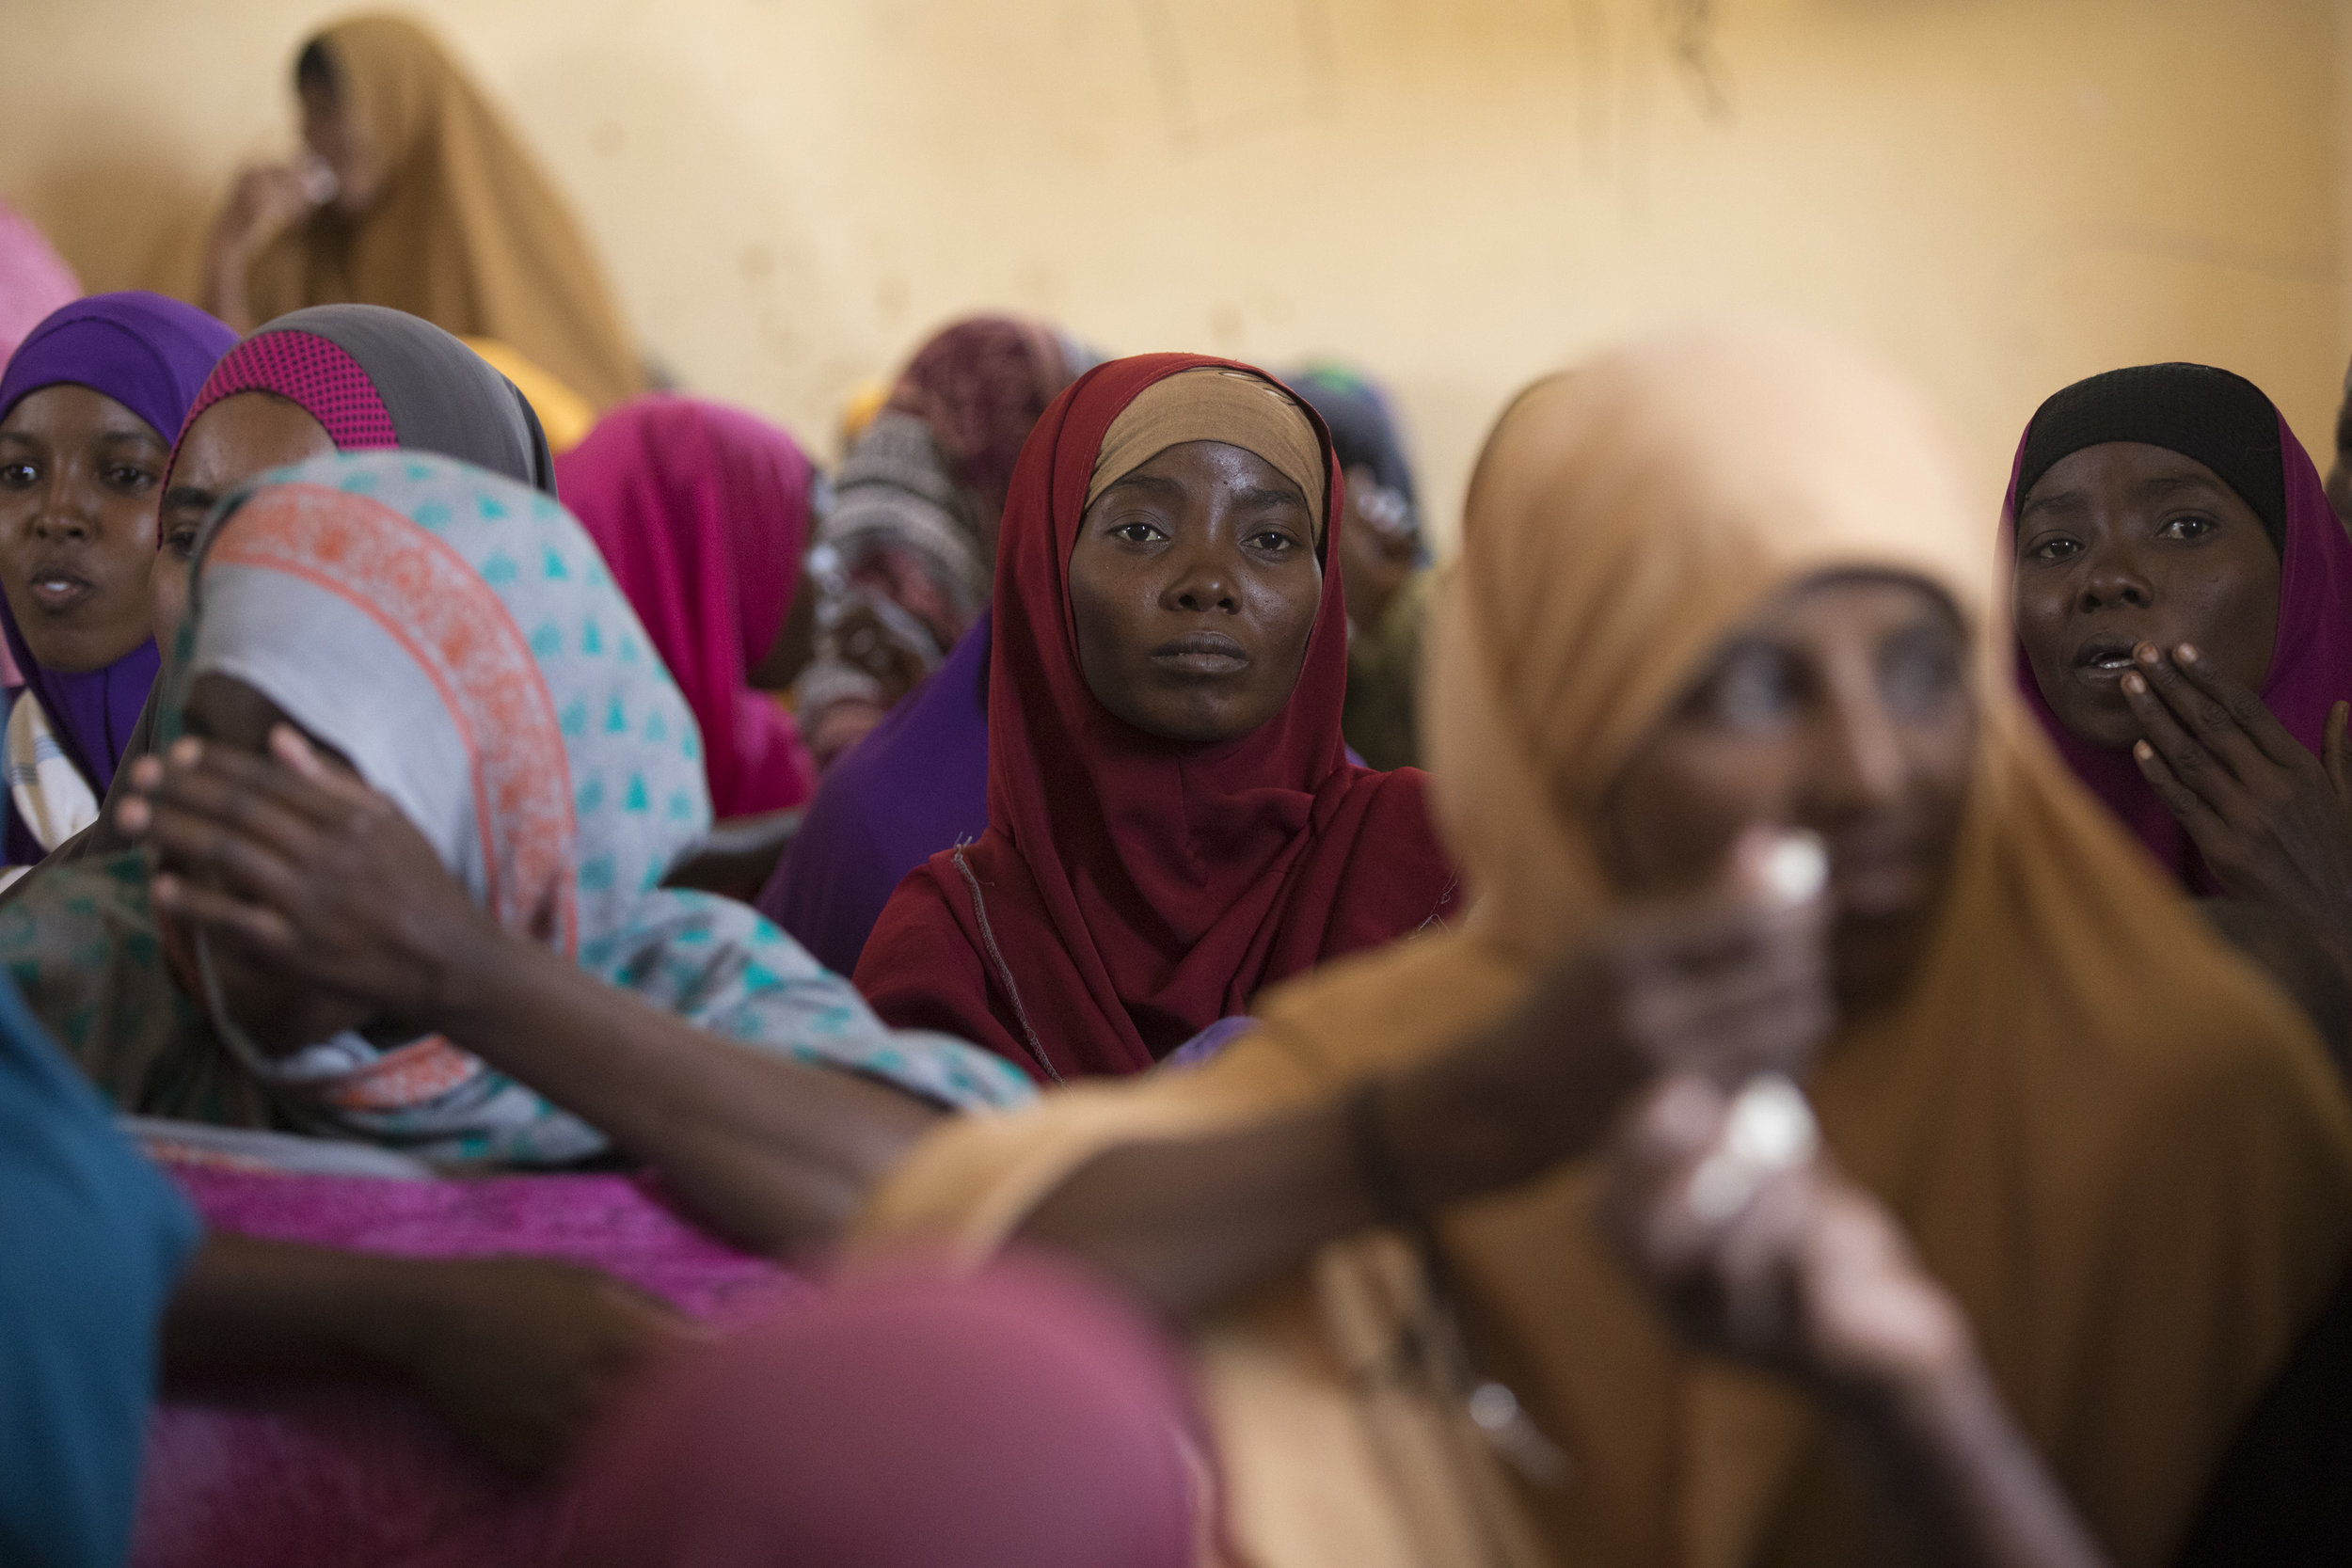 A woman sits in a meeting for gender based violence outreach in Melkadida refugee camp in the Somali region of Ethiopia on 19 Dec 2017. AFP Photo / Zacharias Abubeker